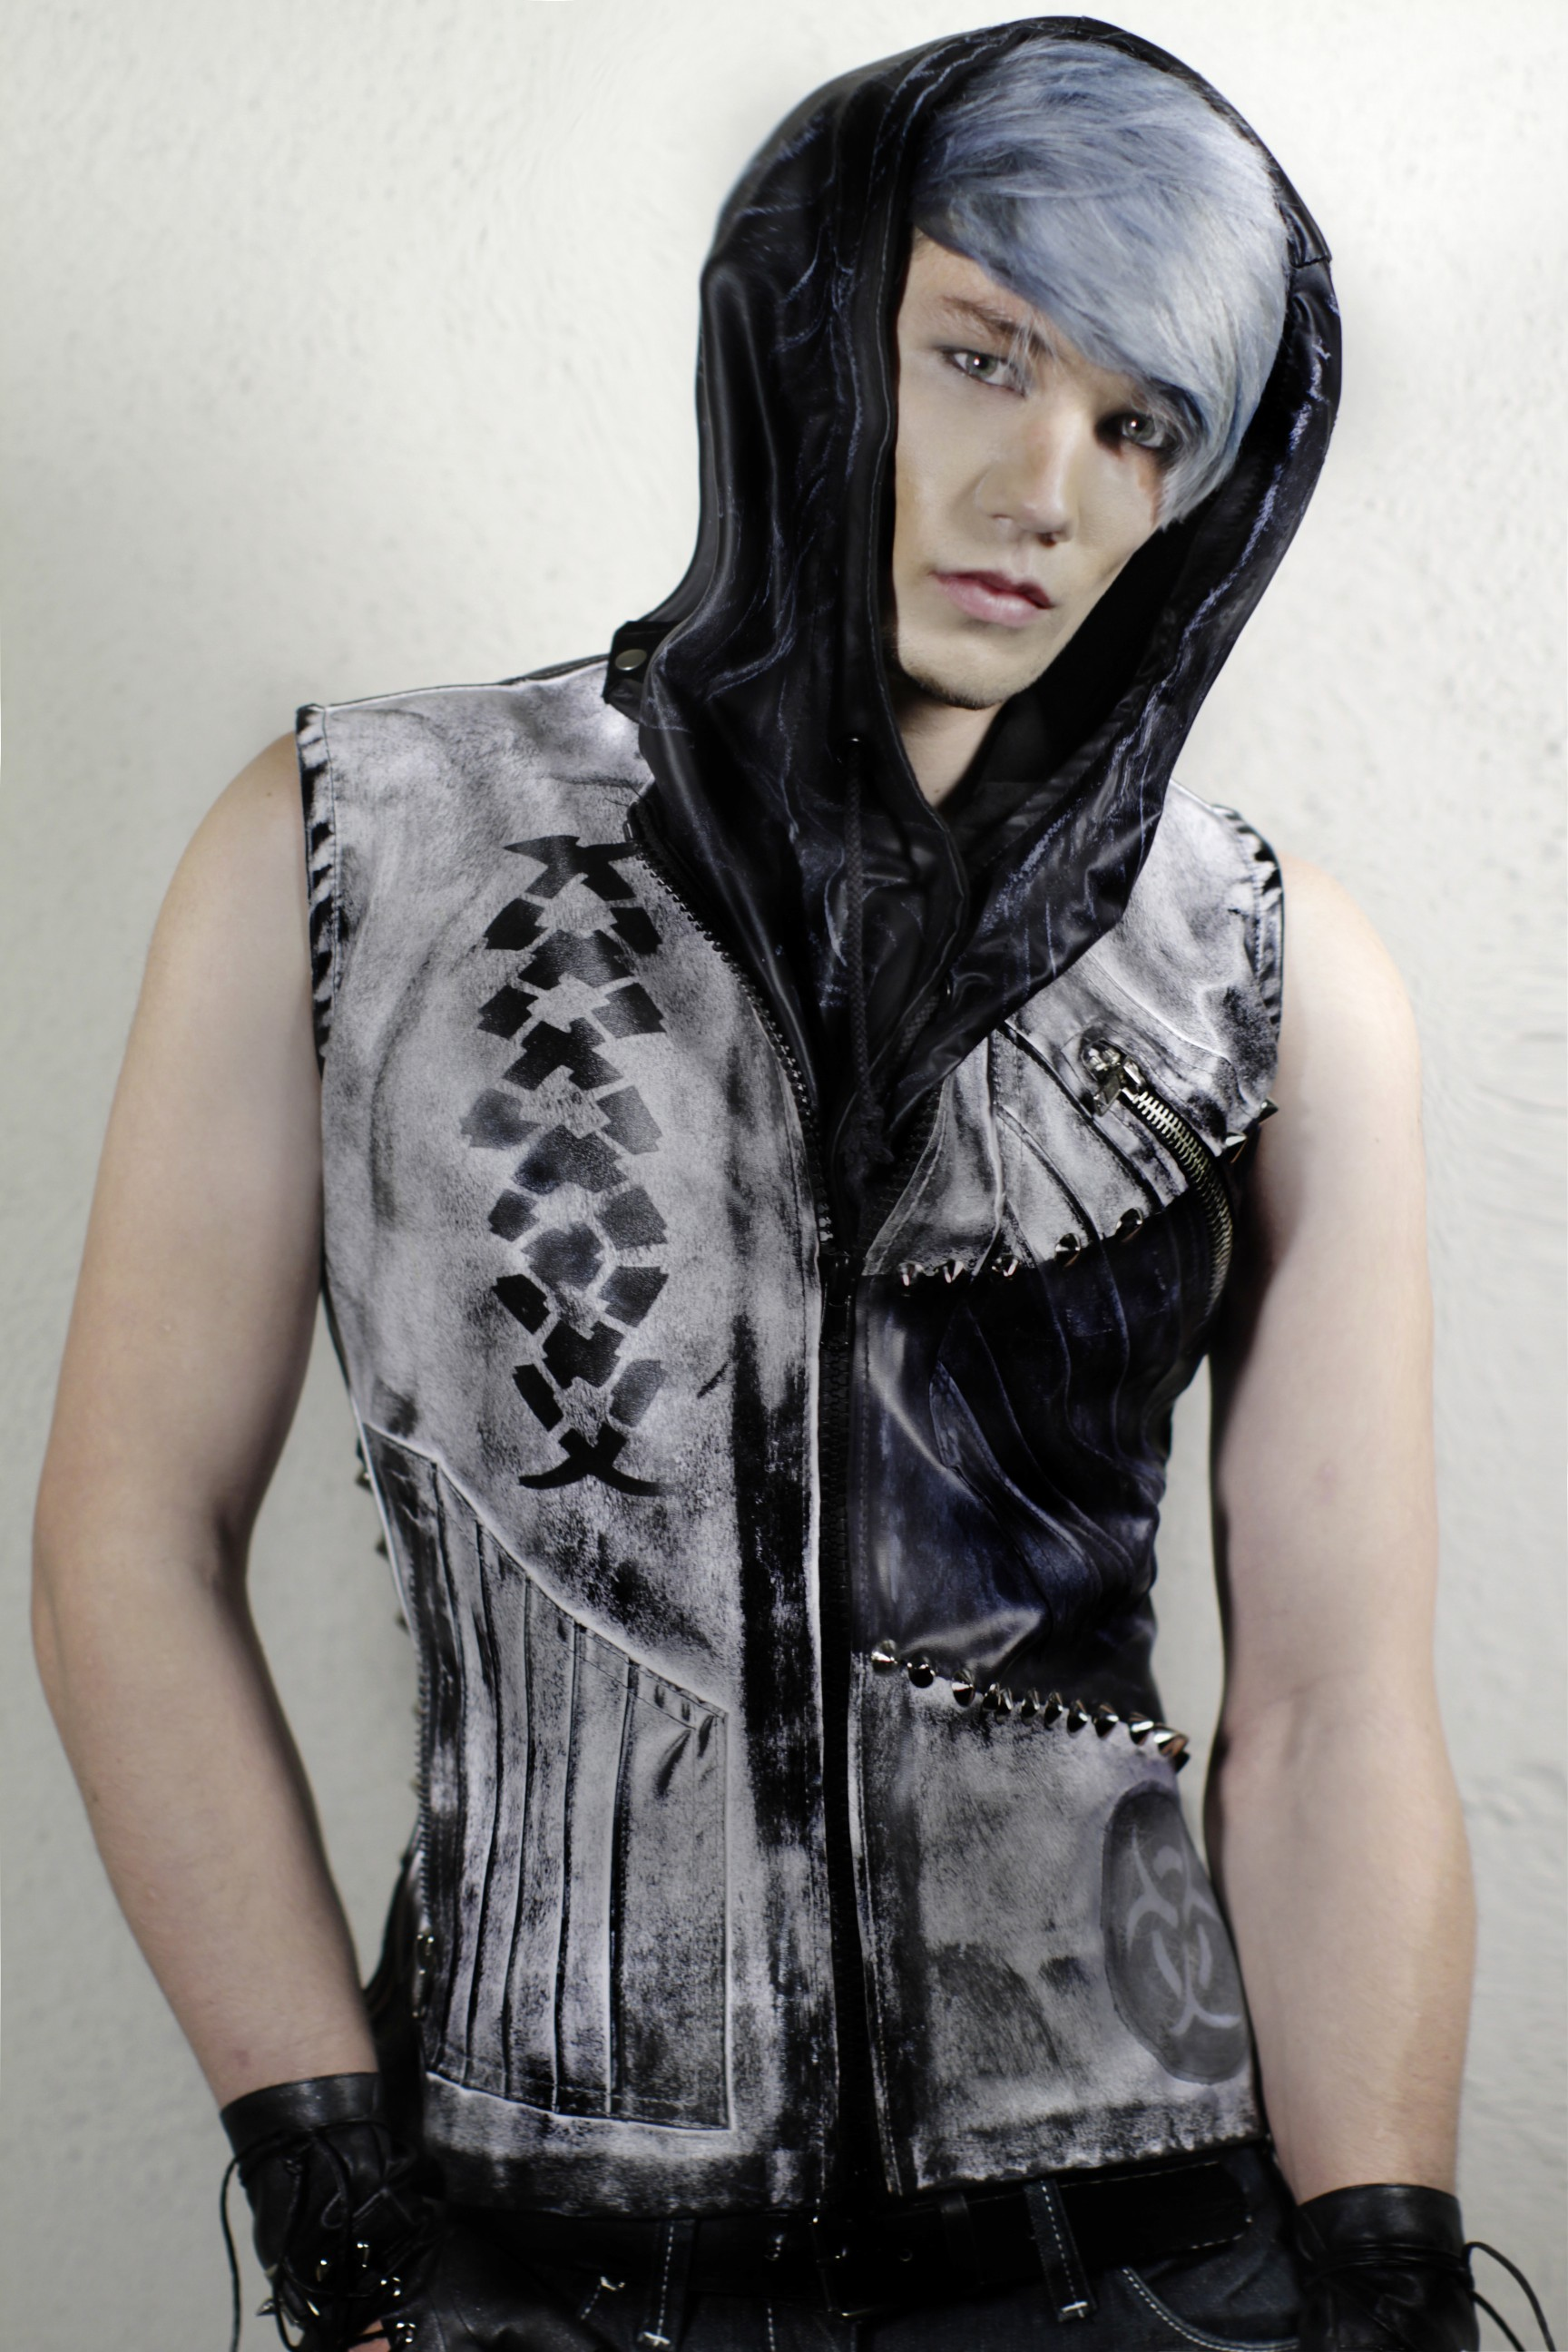 exnihilo_removable_hooded_vest_white_variant_1_hoodies_and_sweatshirts_5.jpg